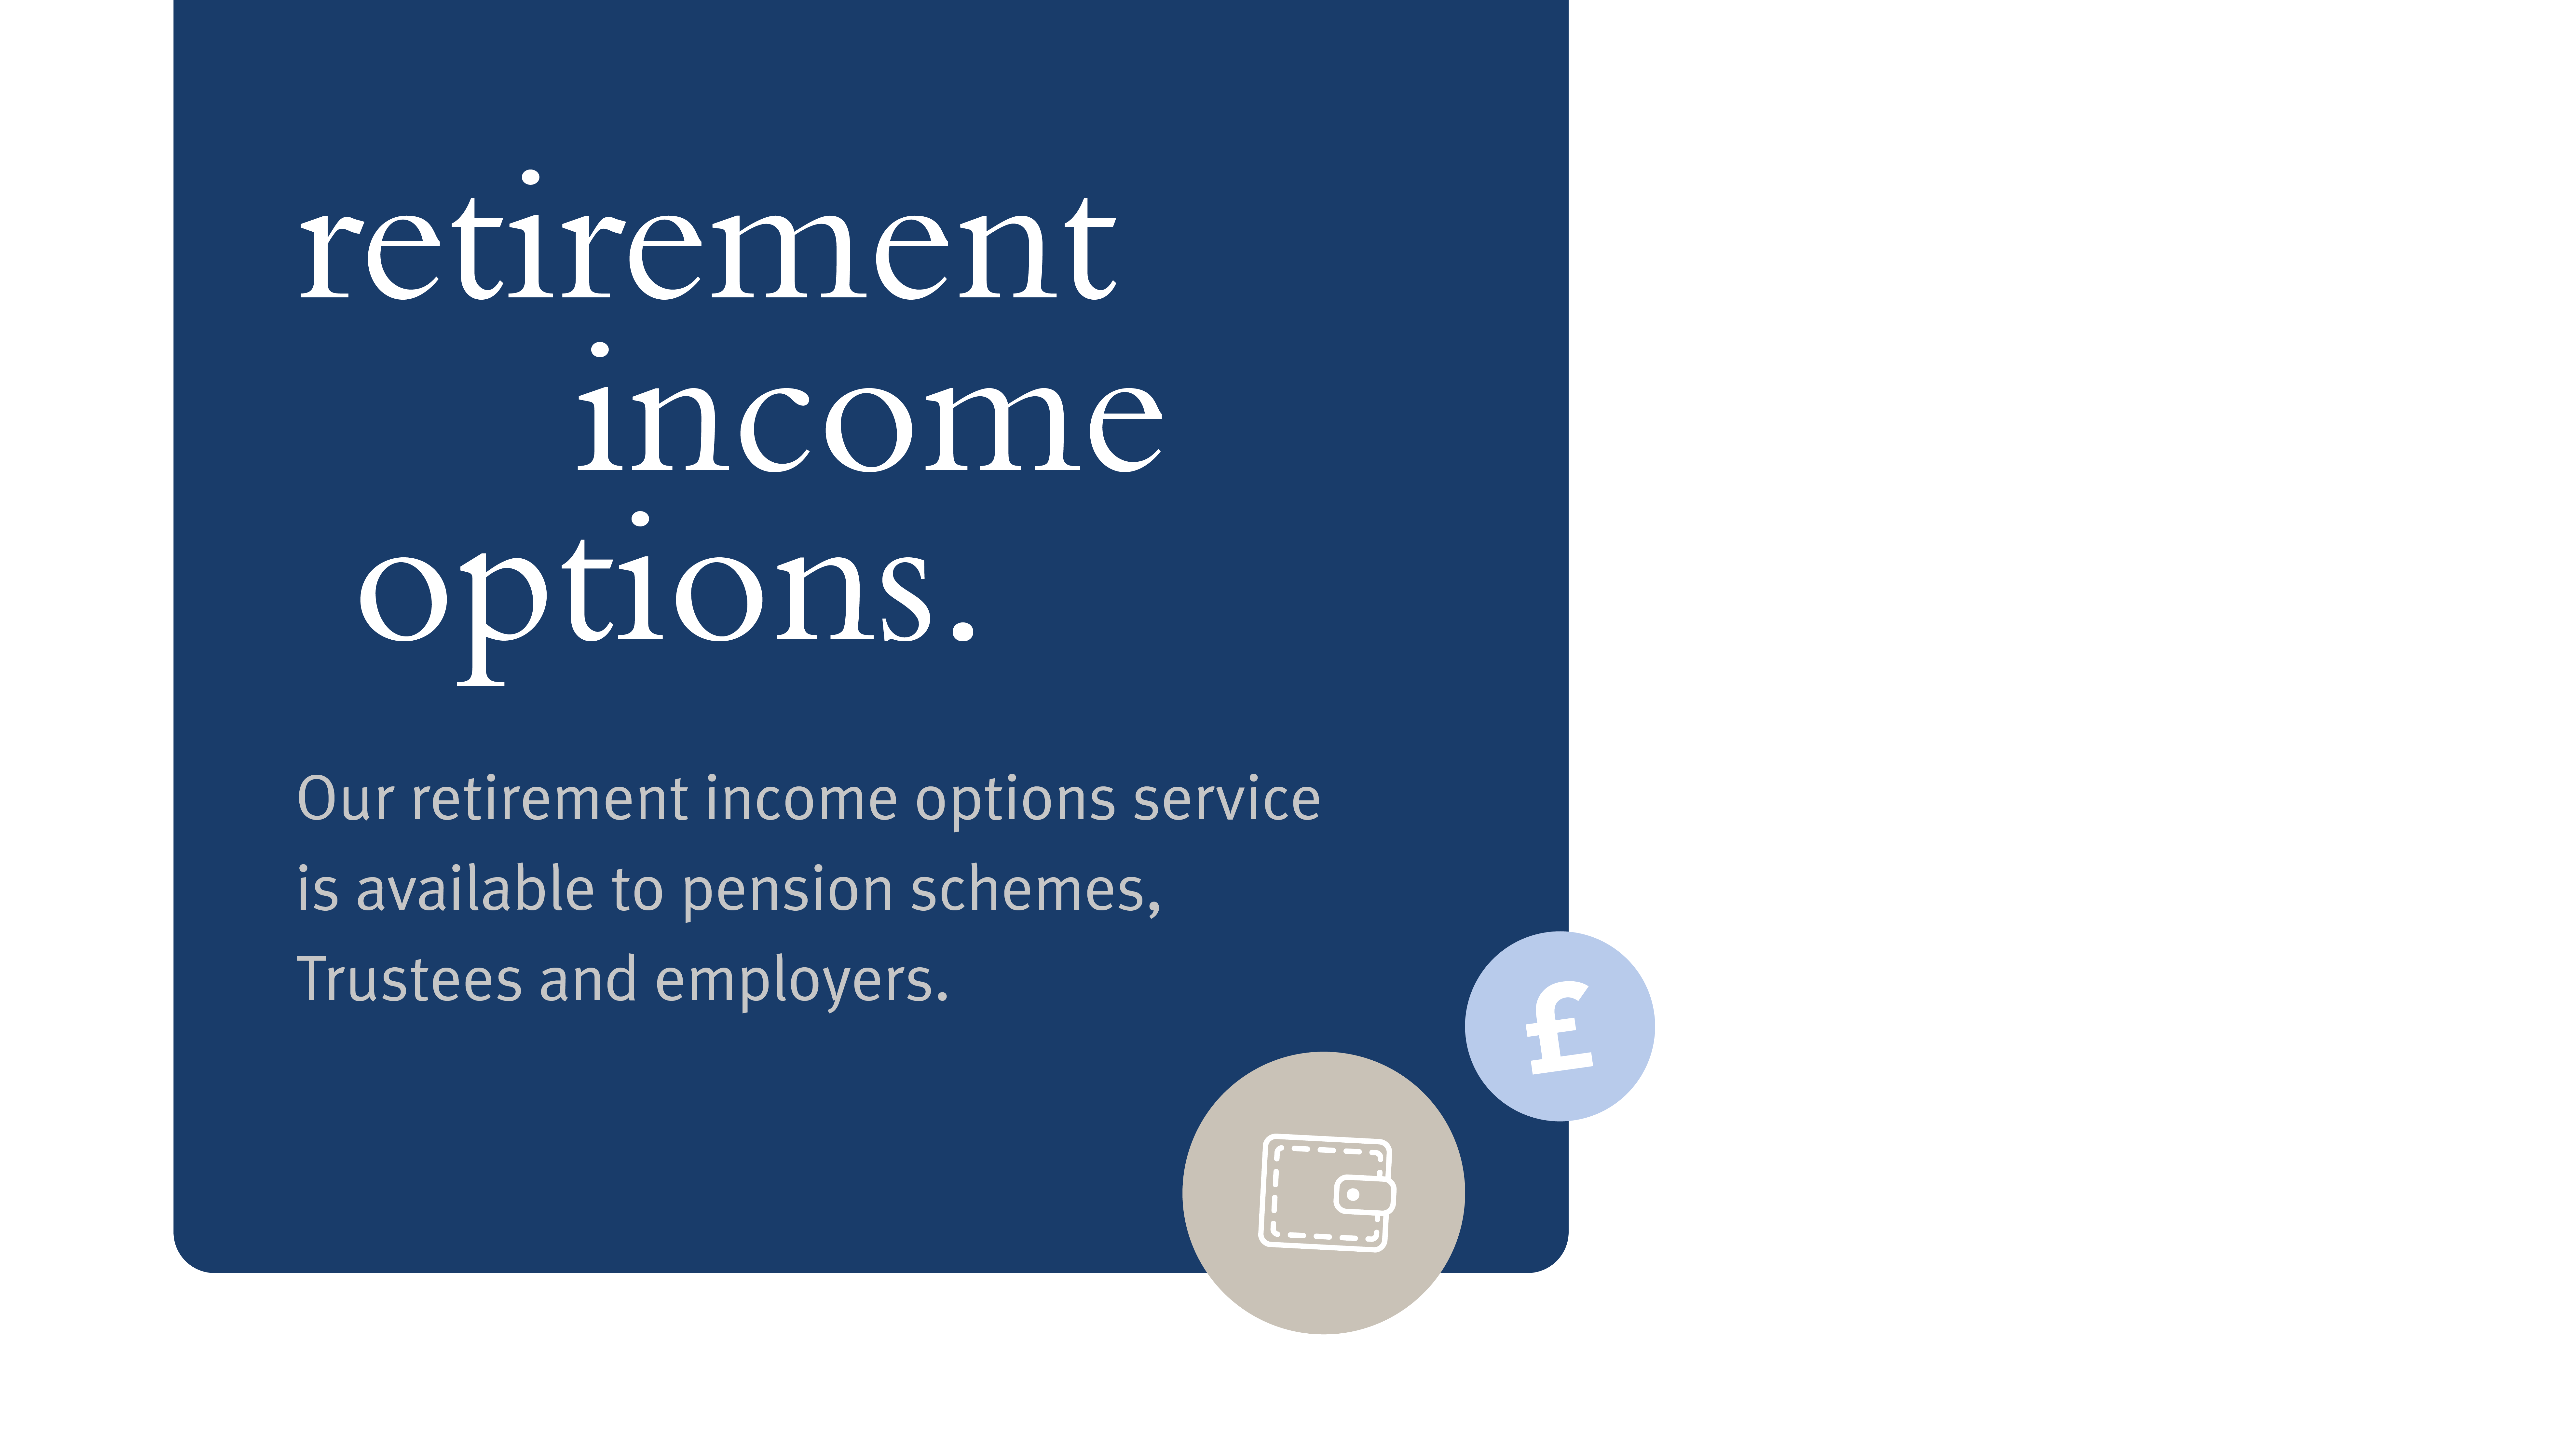 Image reads: Retirement income options. Our retirement income options service is available to pension schemes, Trustees and employers.